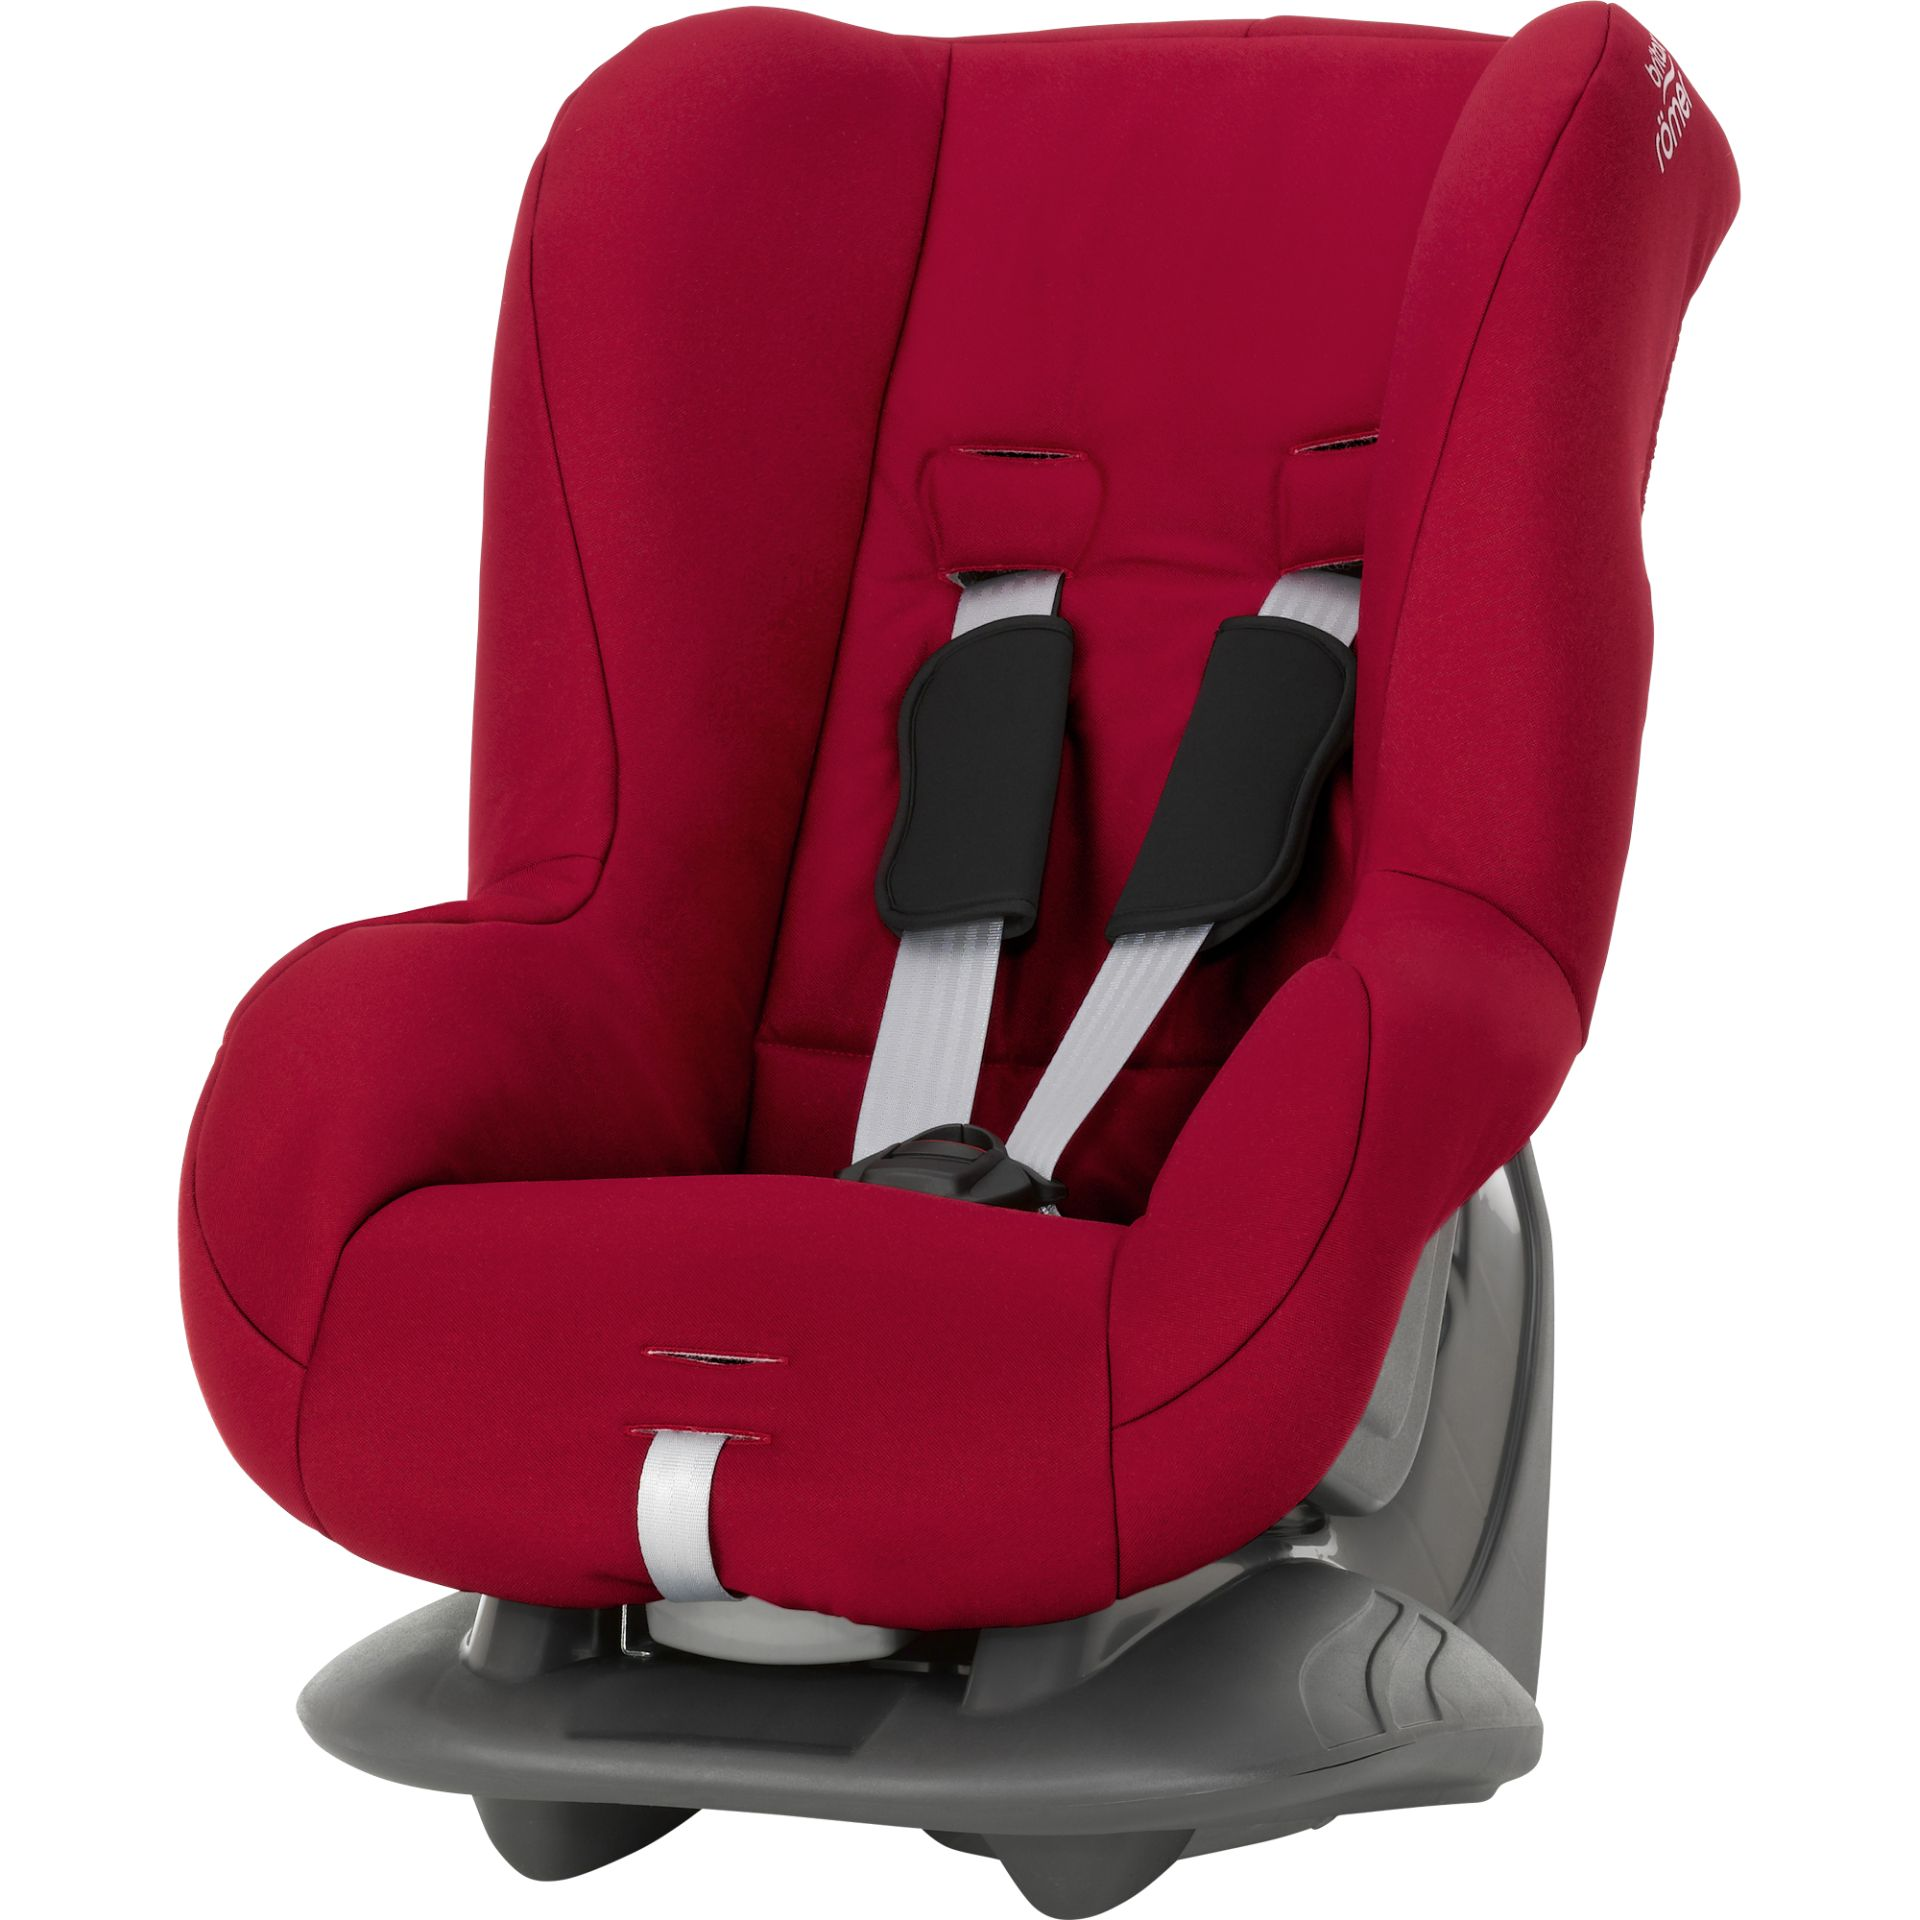 Britax Romer Car Seat Eclipse Flame Red 2018 Large Image 1